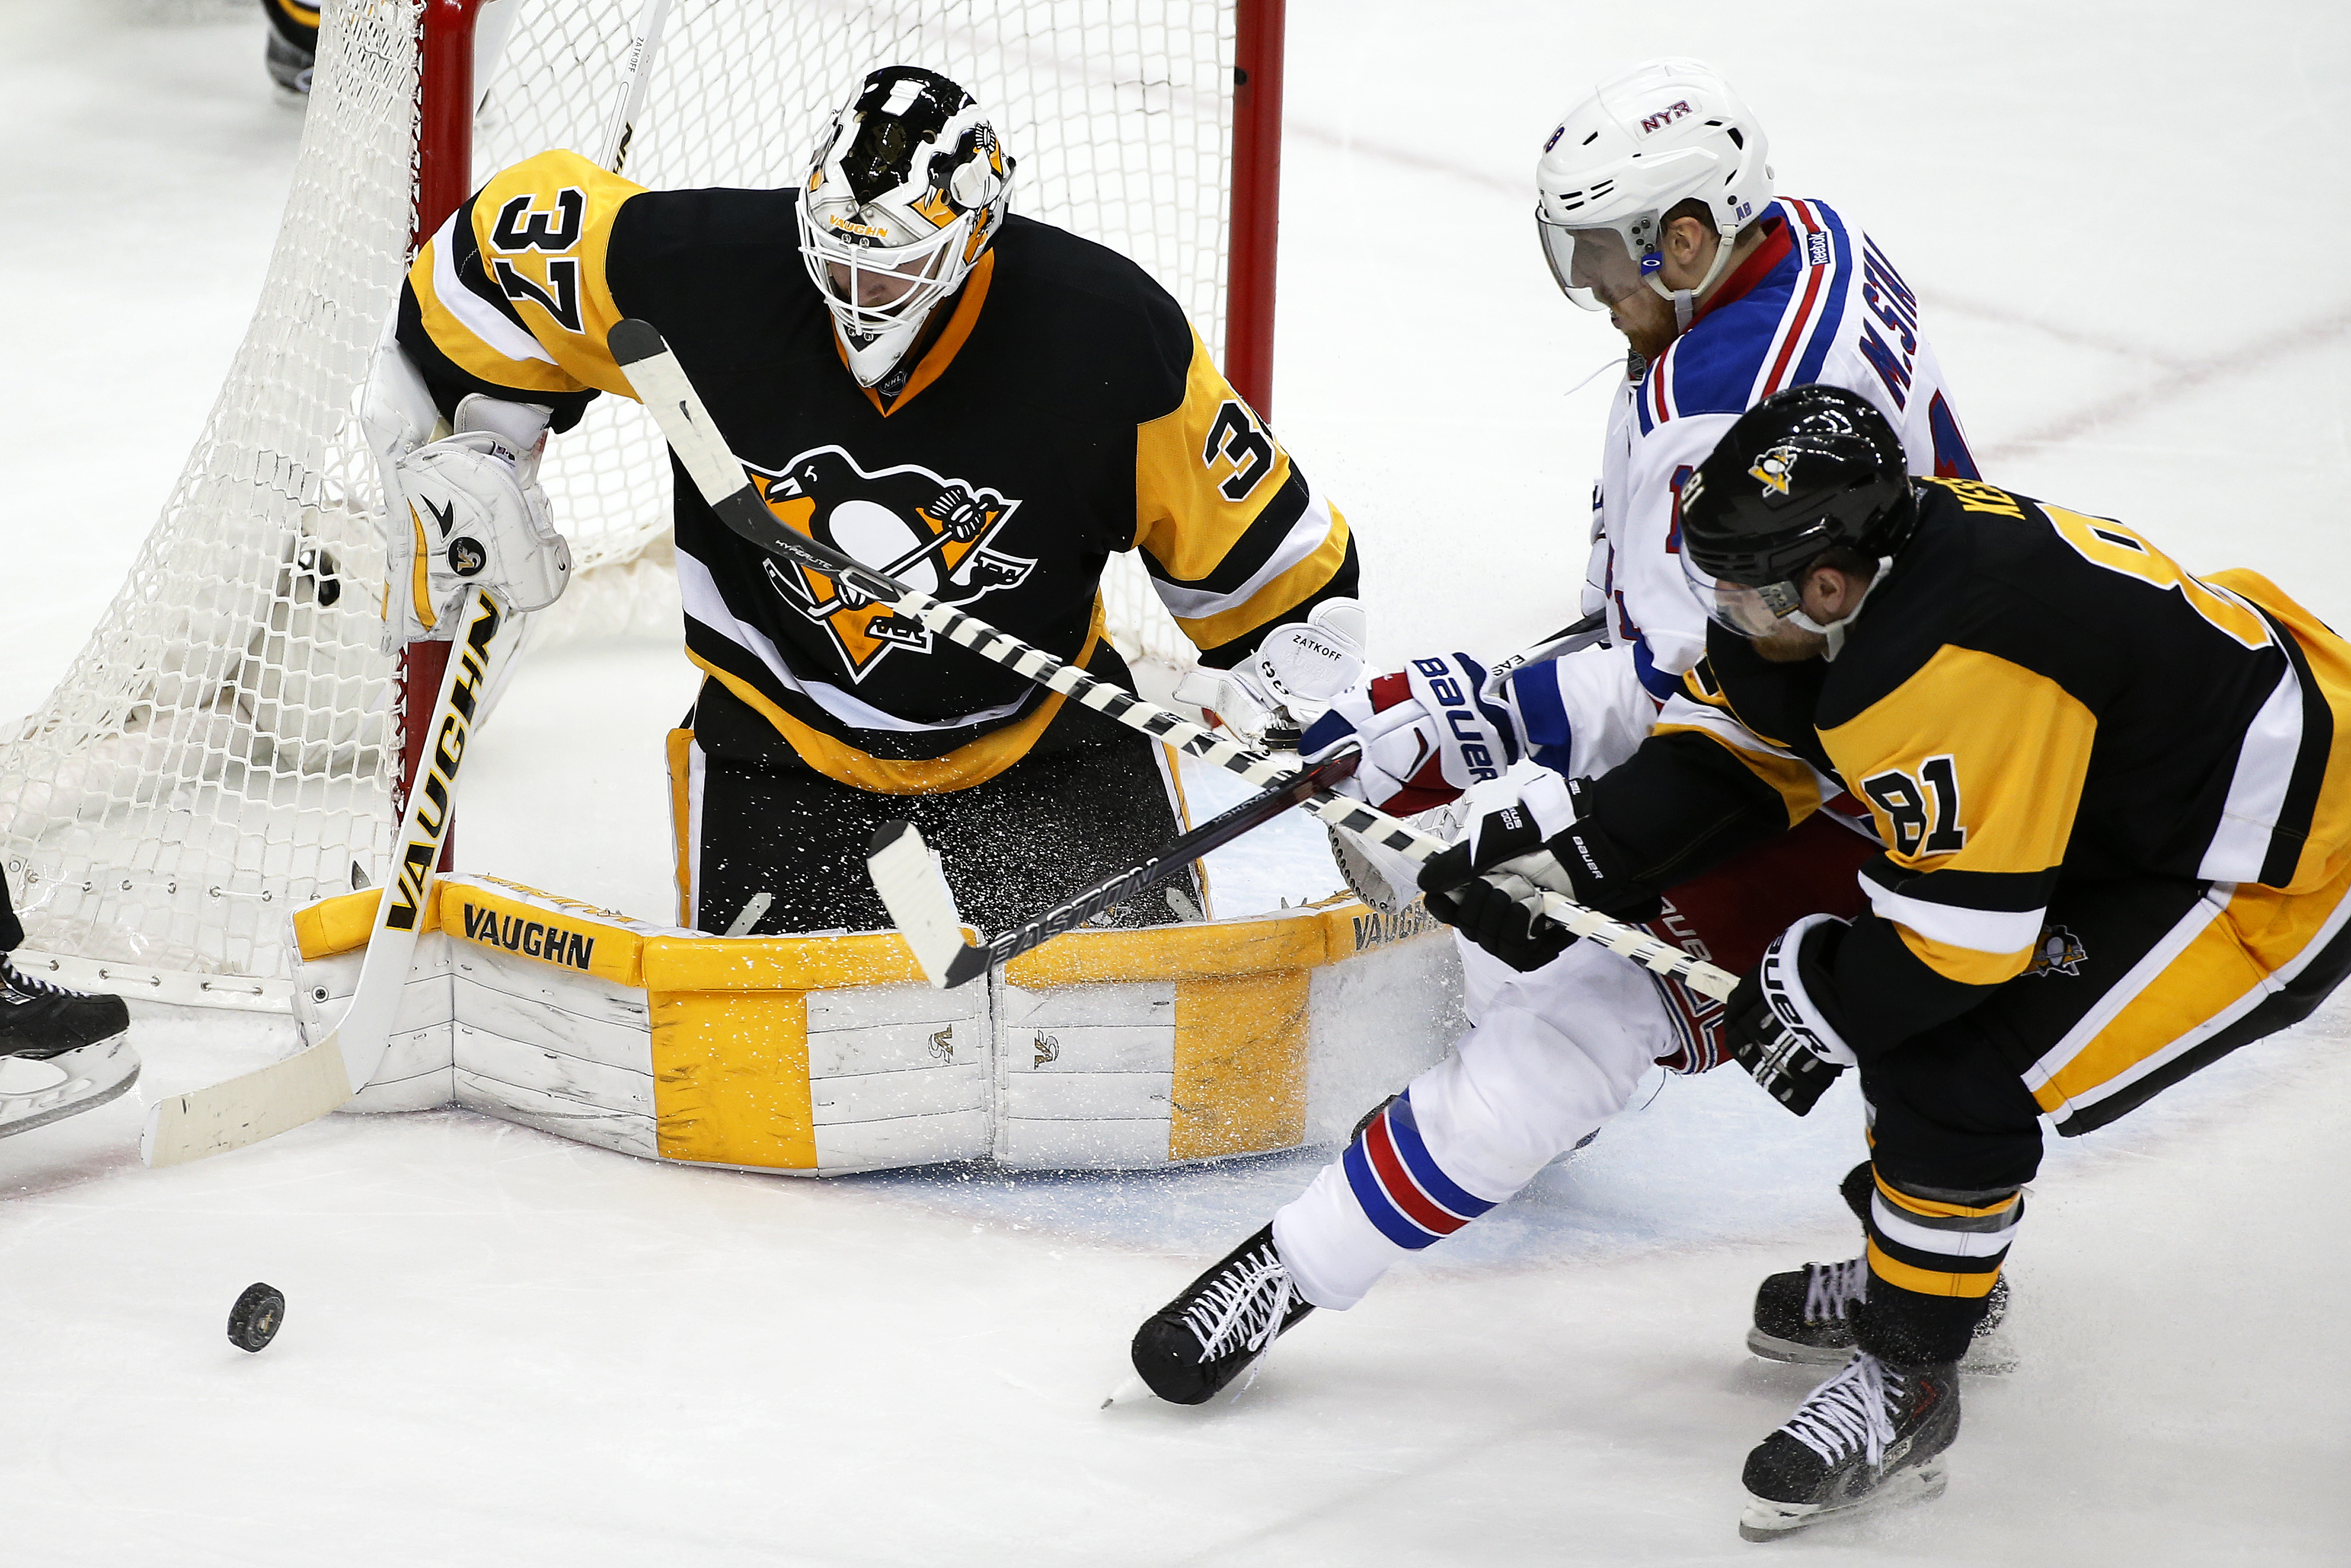 Pittsburgh Penguins goalie Jeff Zatkoff (37) stops a shot and Phil Kessel (81) lifts the stick of New York Rangers' Marc Staal to keep him from the rebound during the third period of a first-round NHL playoff hockey game in Pittsburgh, Wednesday, April 13